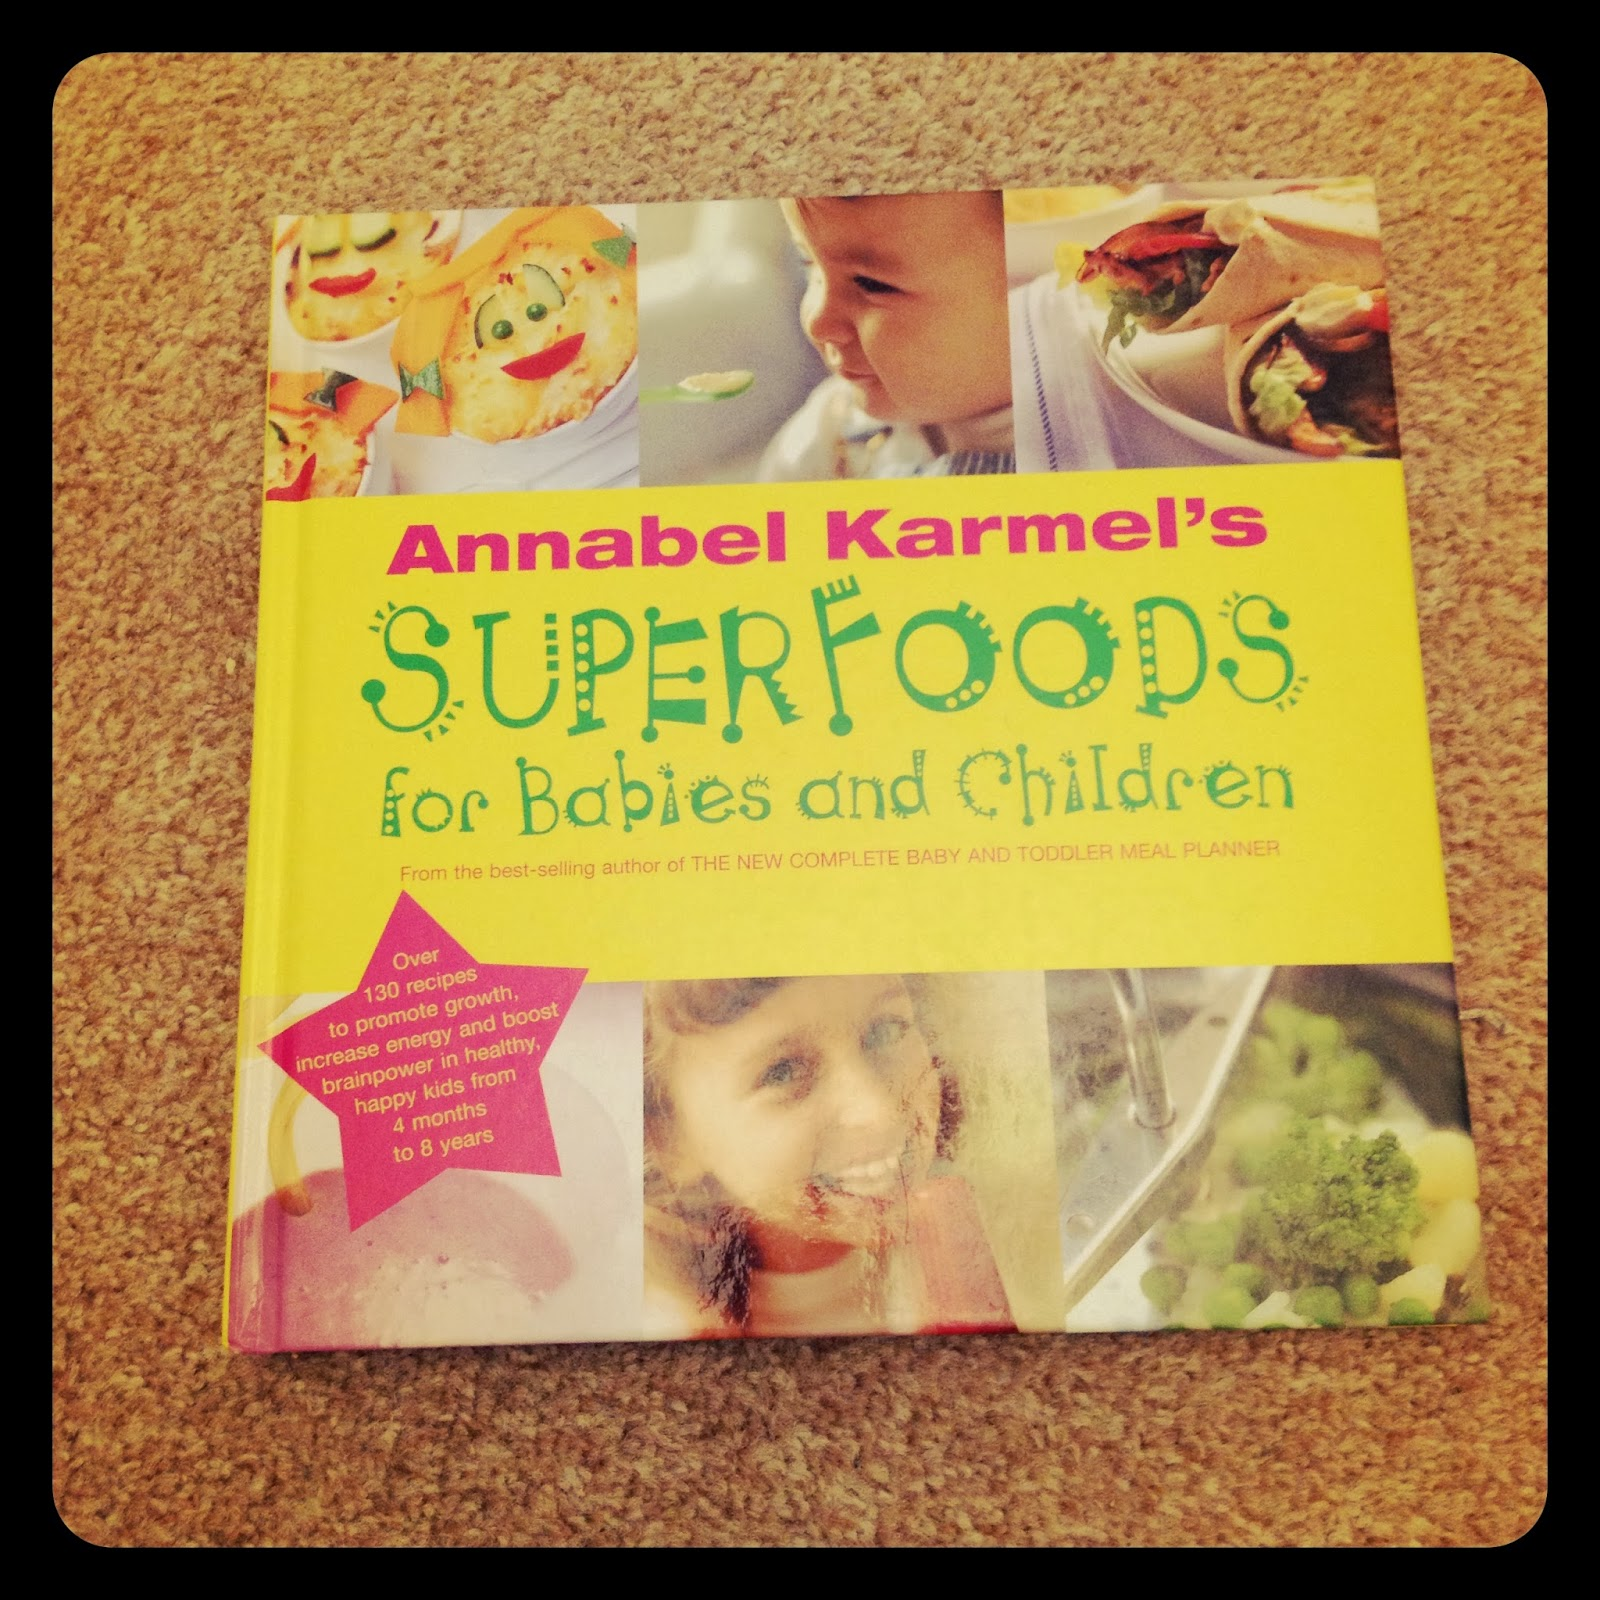 mamasVIB | V. I. BAKE: Something for the weekend…Superfoods for babies and Children, V. I. BAKE | Something for the weekend | toddler meal | food planning | Annabel Karmel | kids eating | baby food | mamasVIB